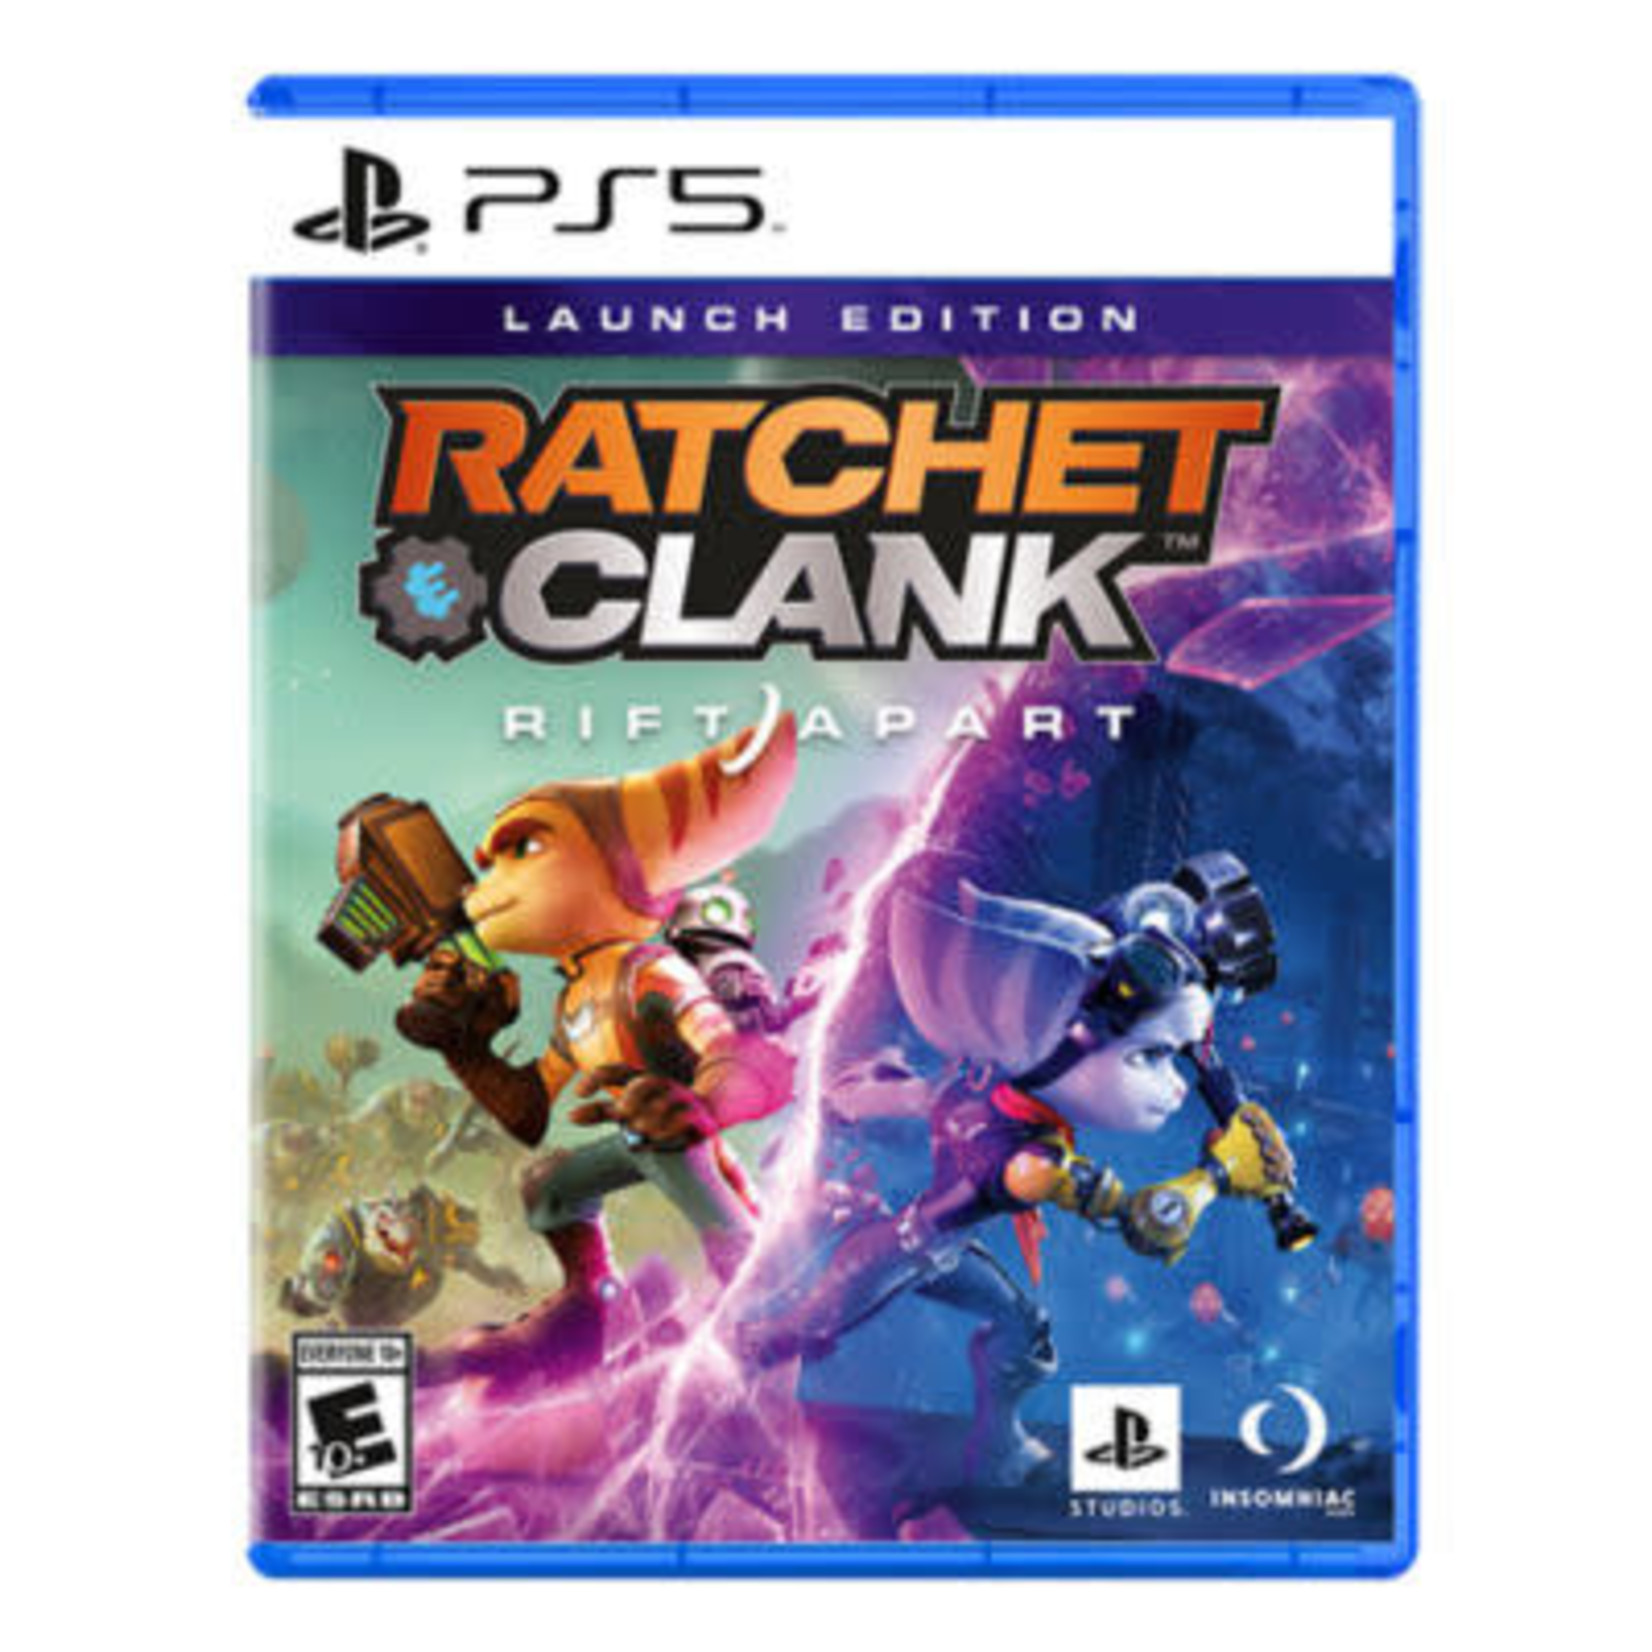 PS5U-RATCHET AND CLANK RIFT APART